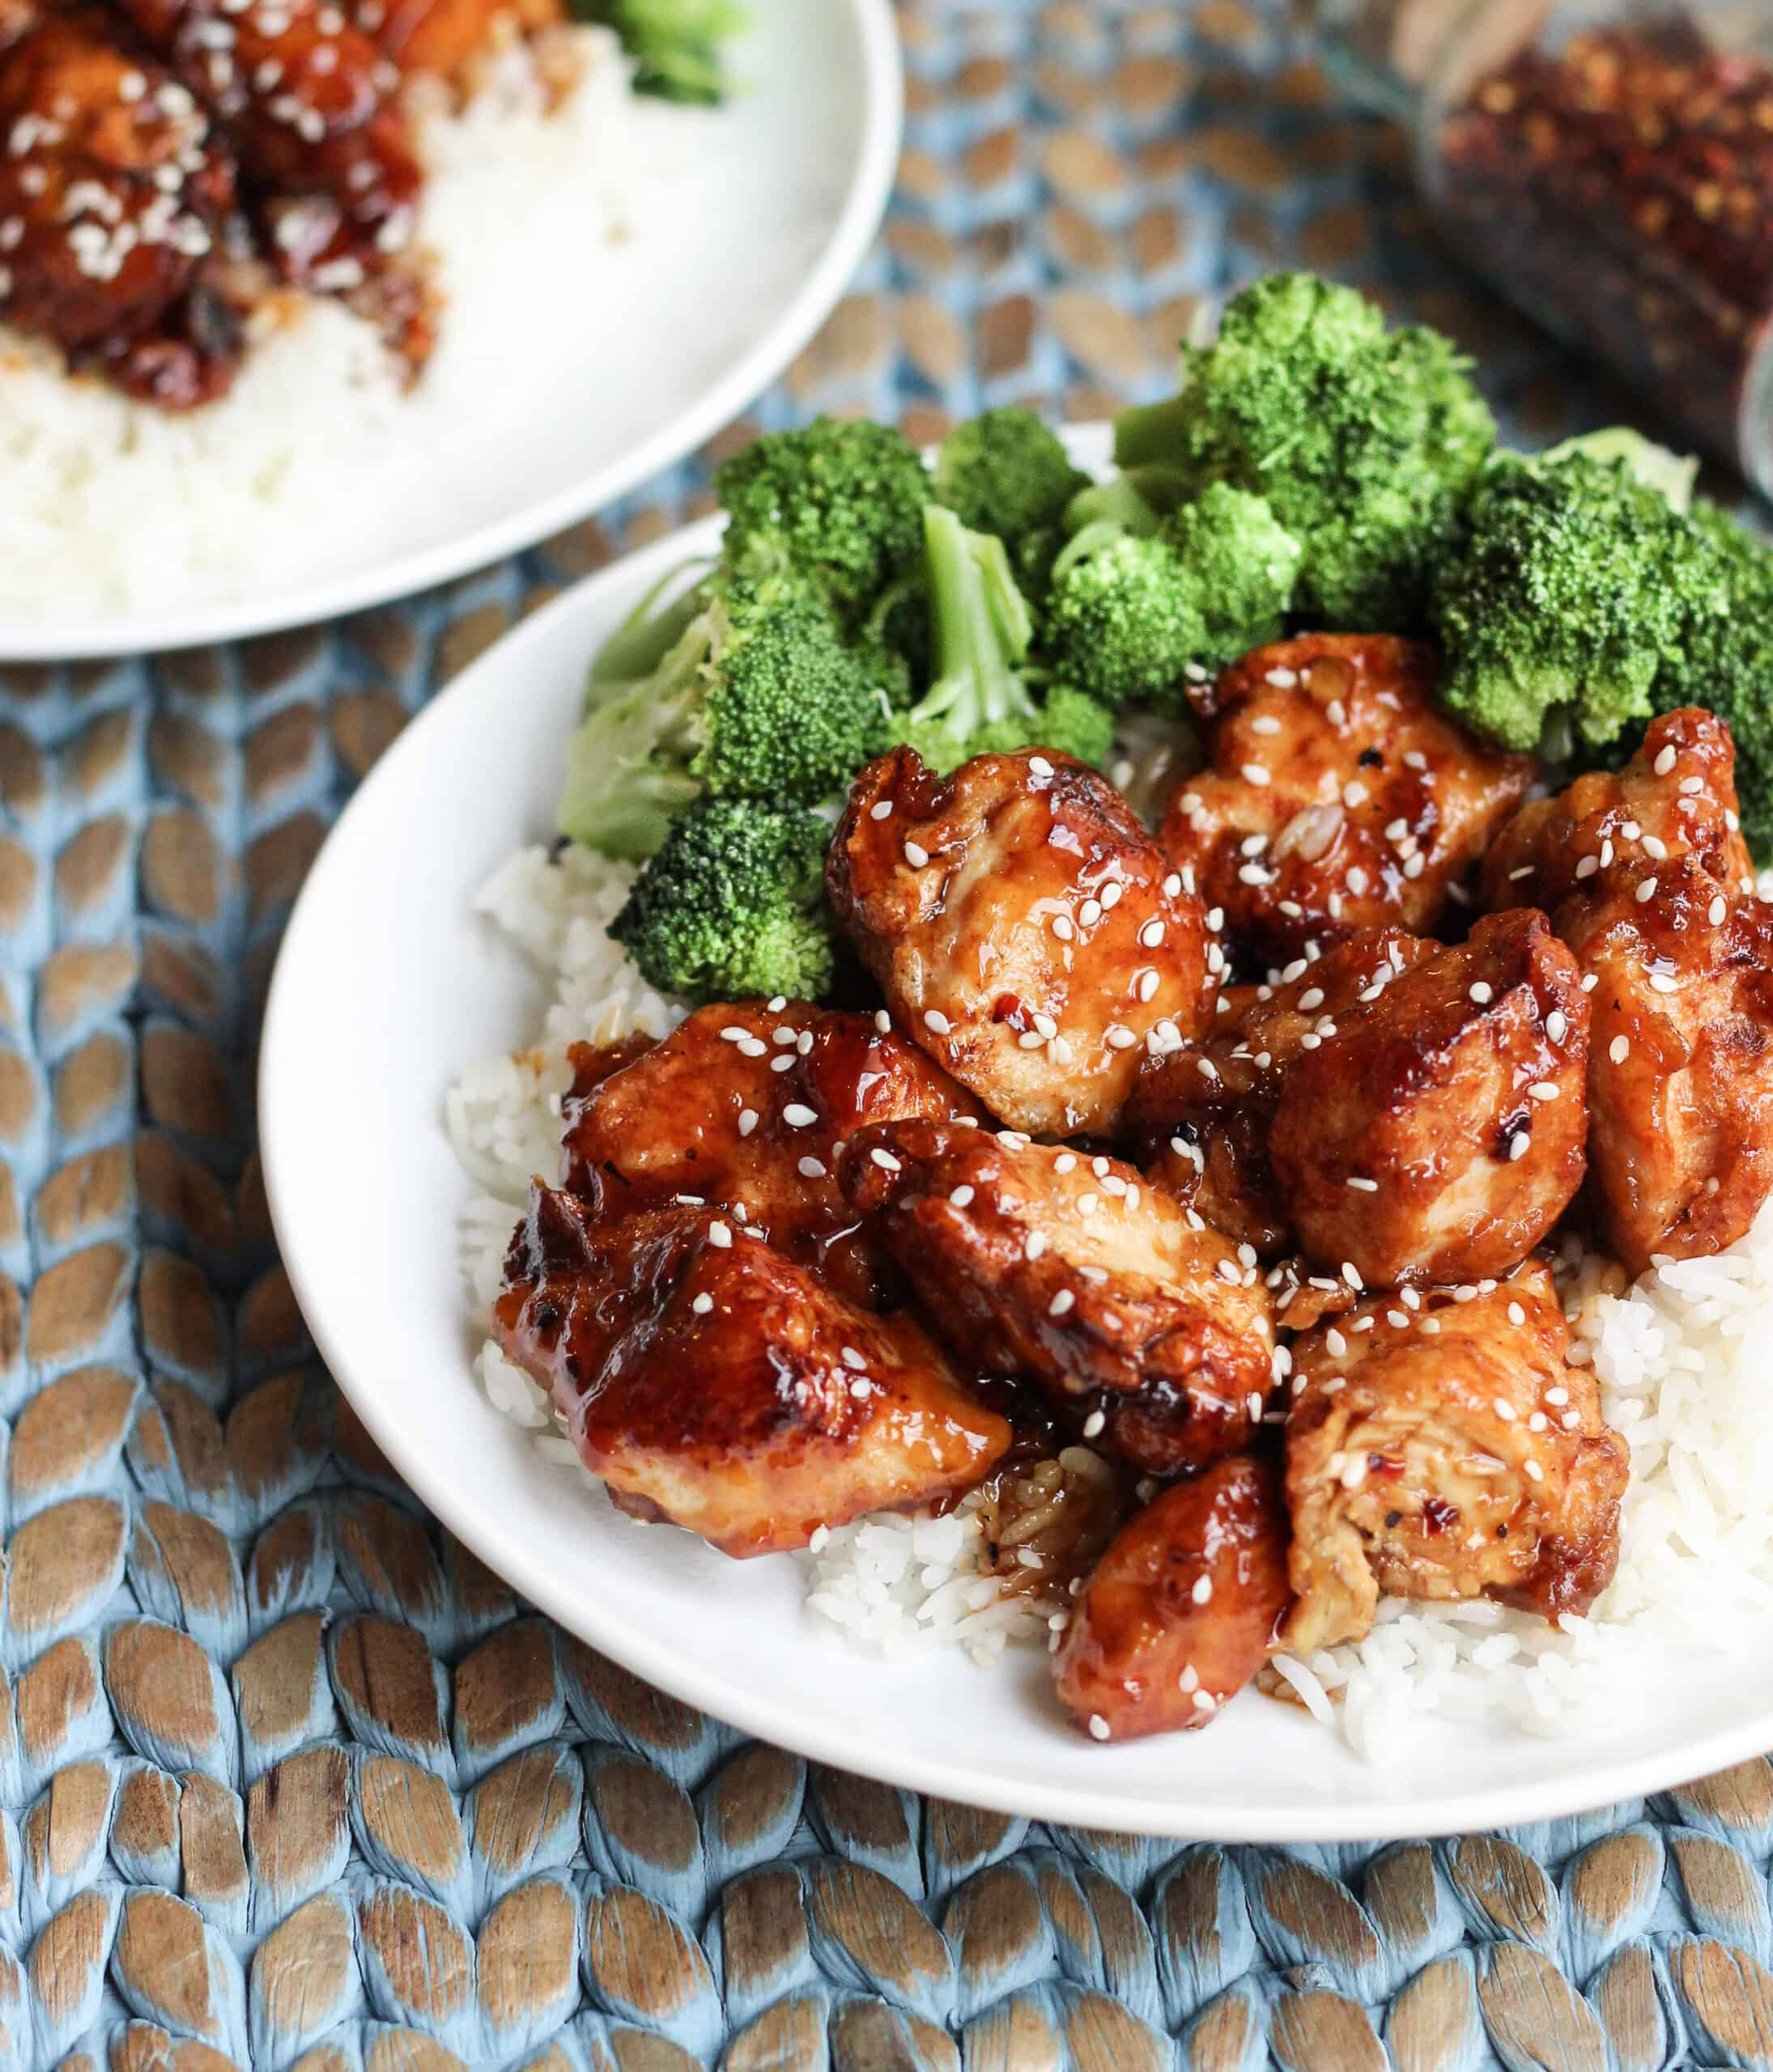 White dinner plate with white rice and glazed sesame seed chicken and broccoli.